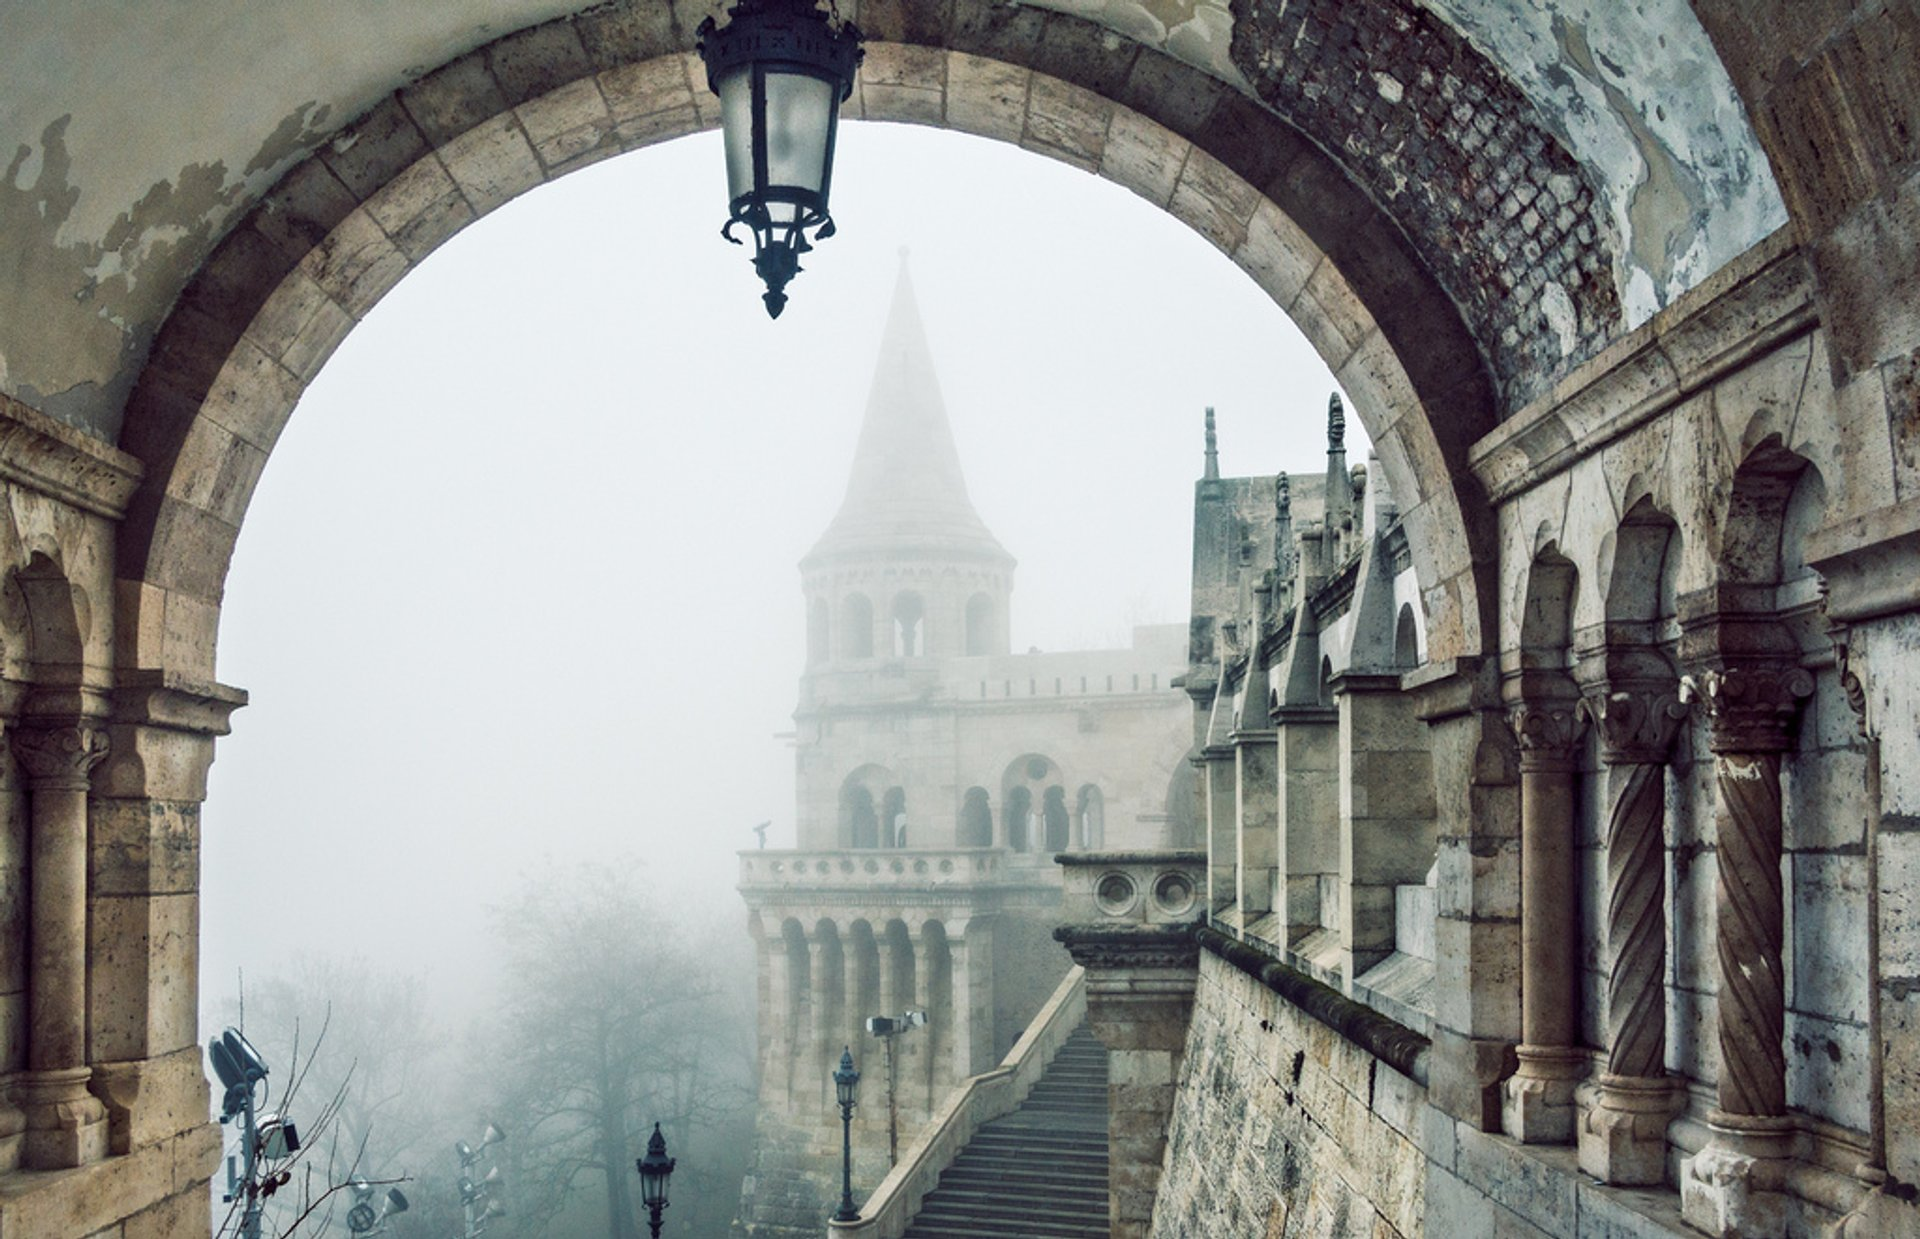 Winter Wonderland at the Fisherman's Bastion in Budapest 2020 - Best Time